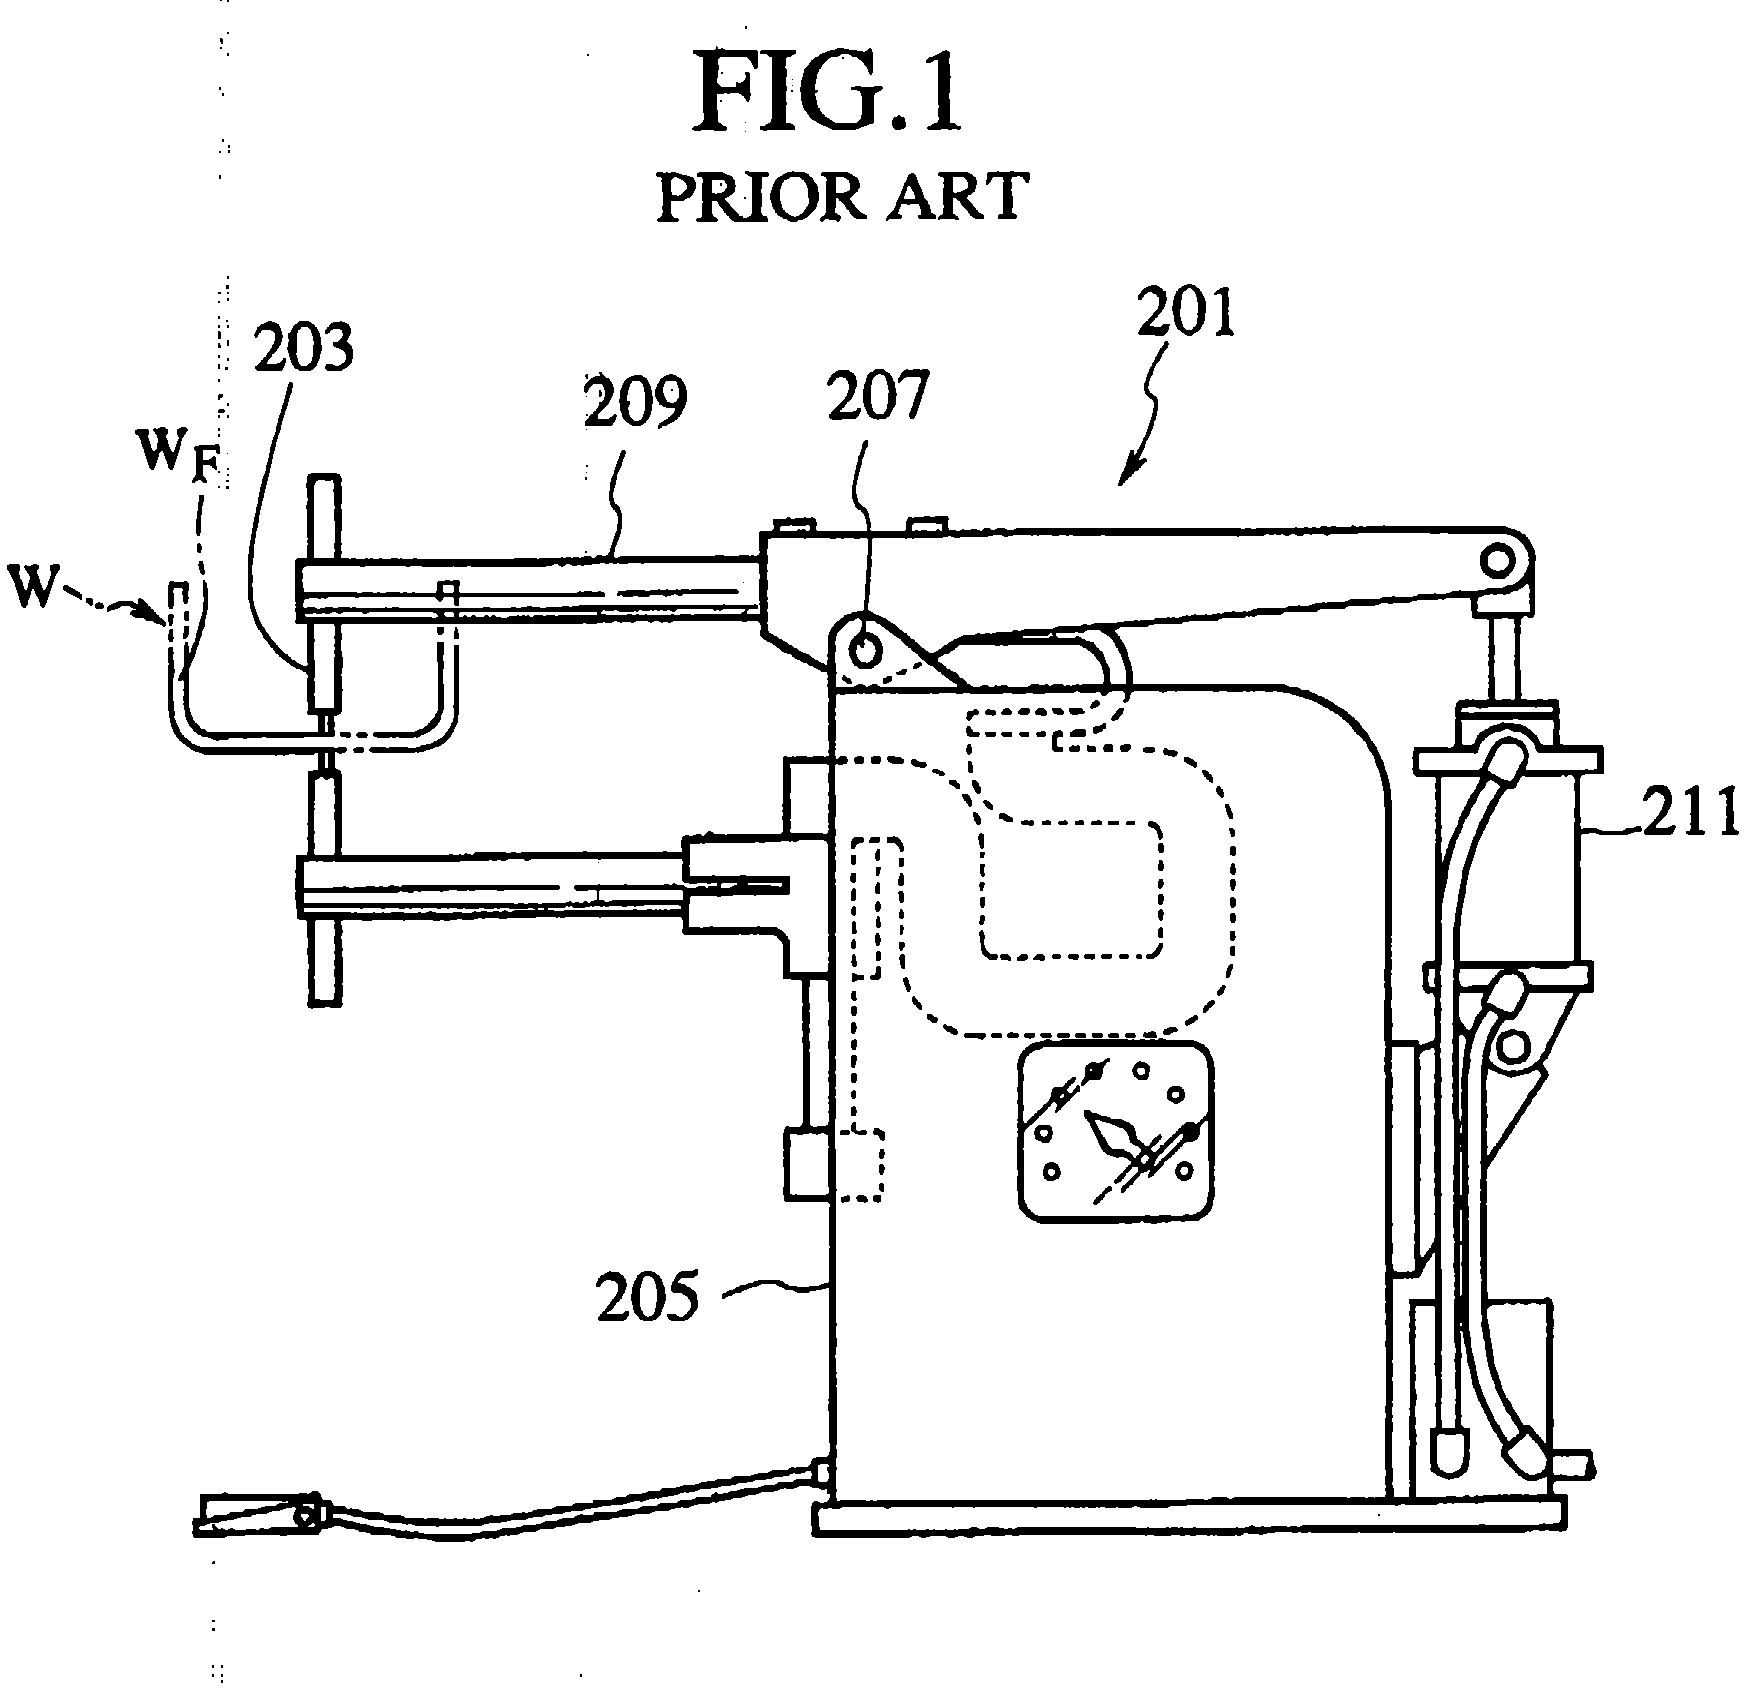 spot welding circuit diagram patent ep0819496a2 - spot welding machine - google patents spot welding machine diagram